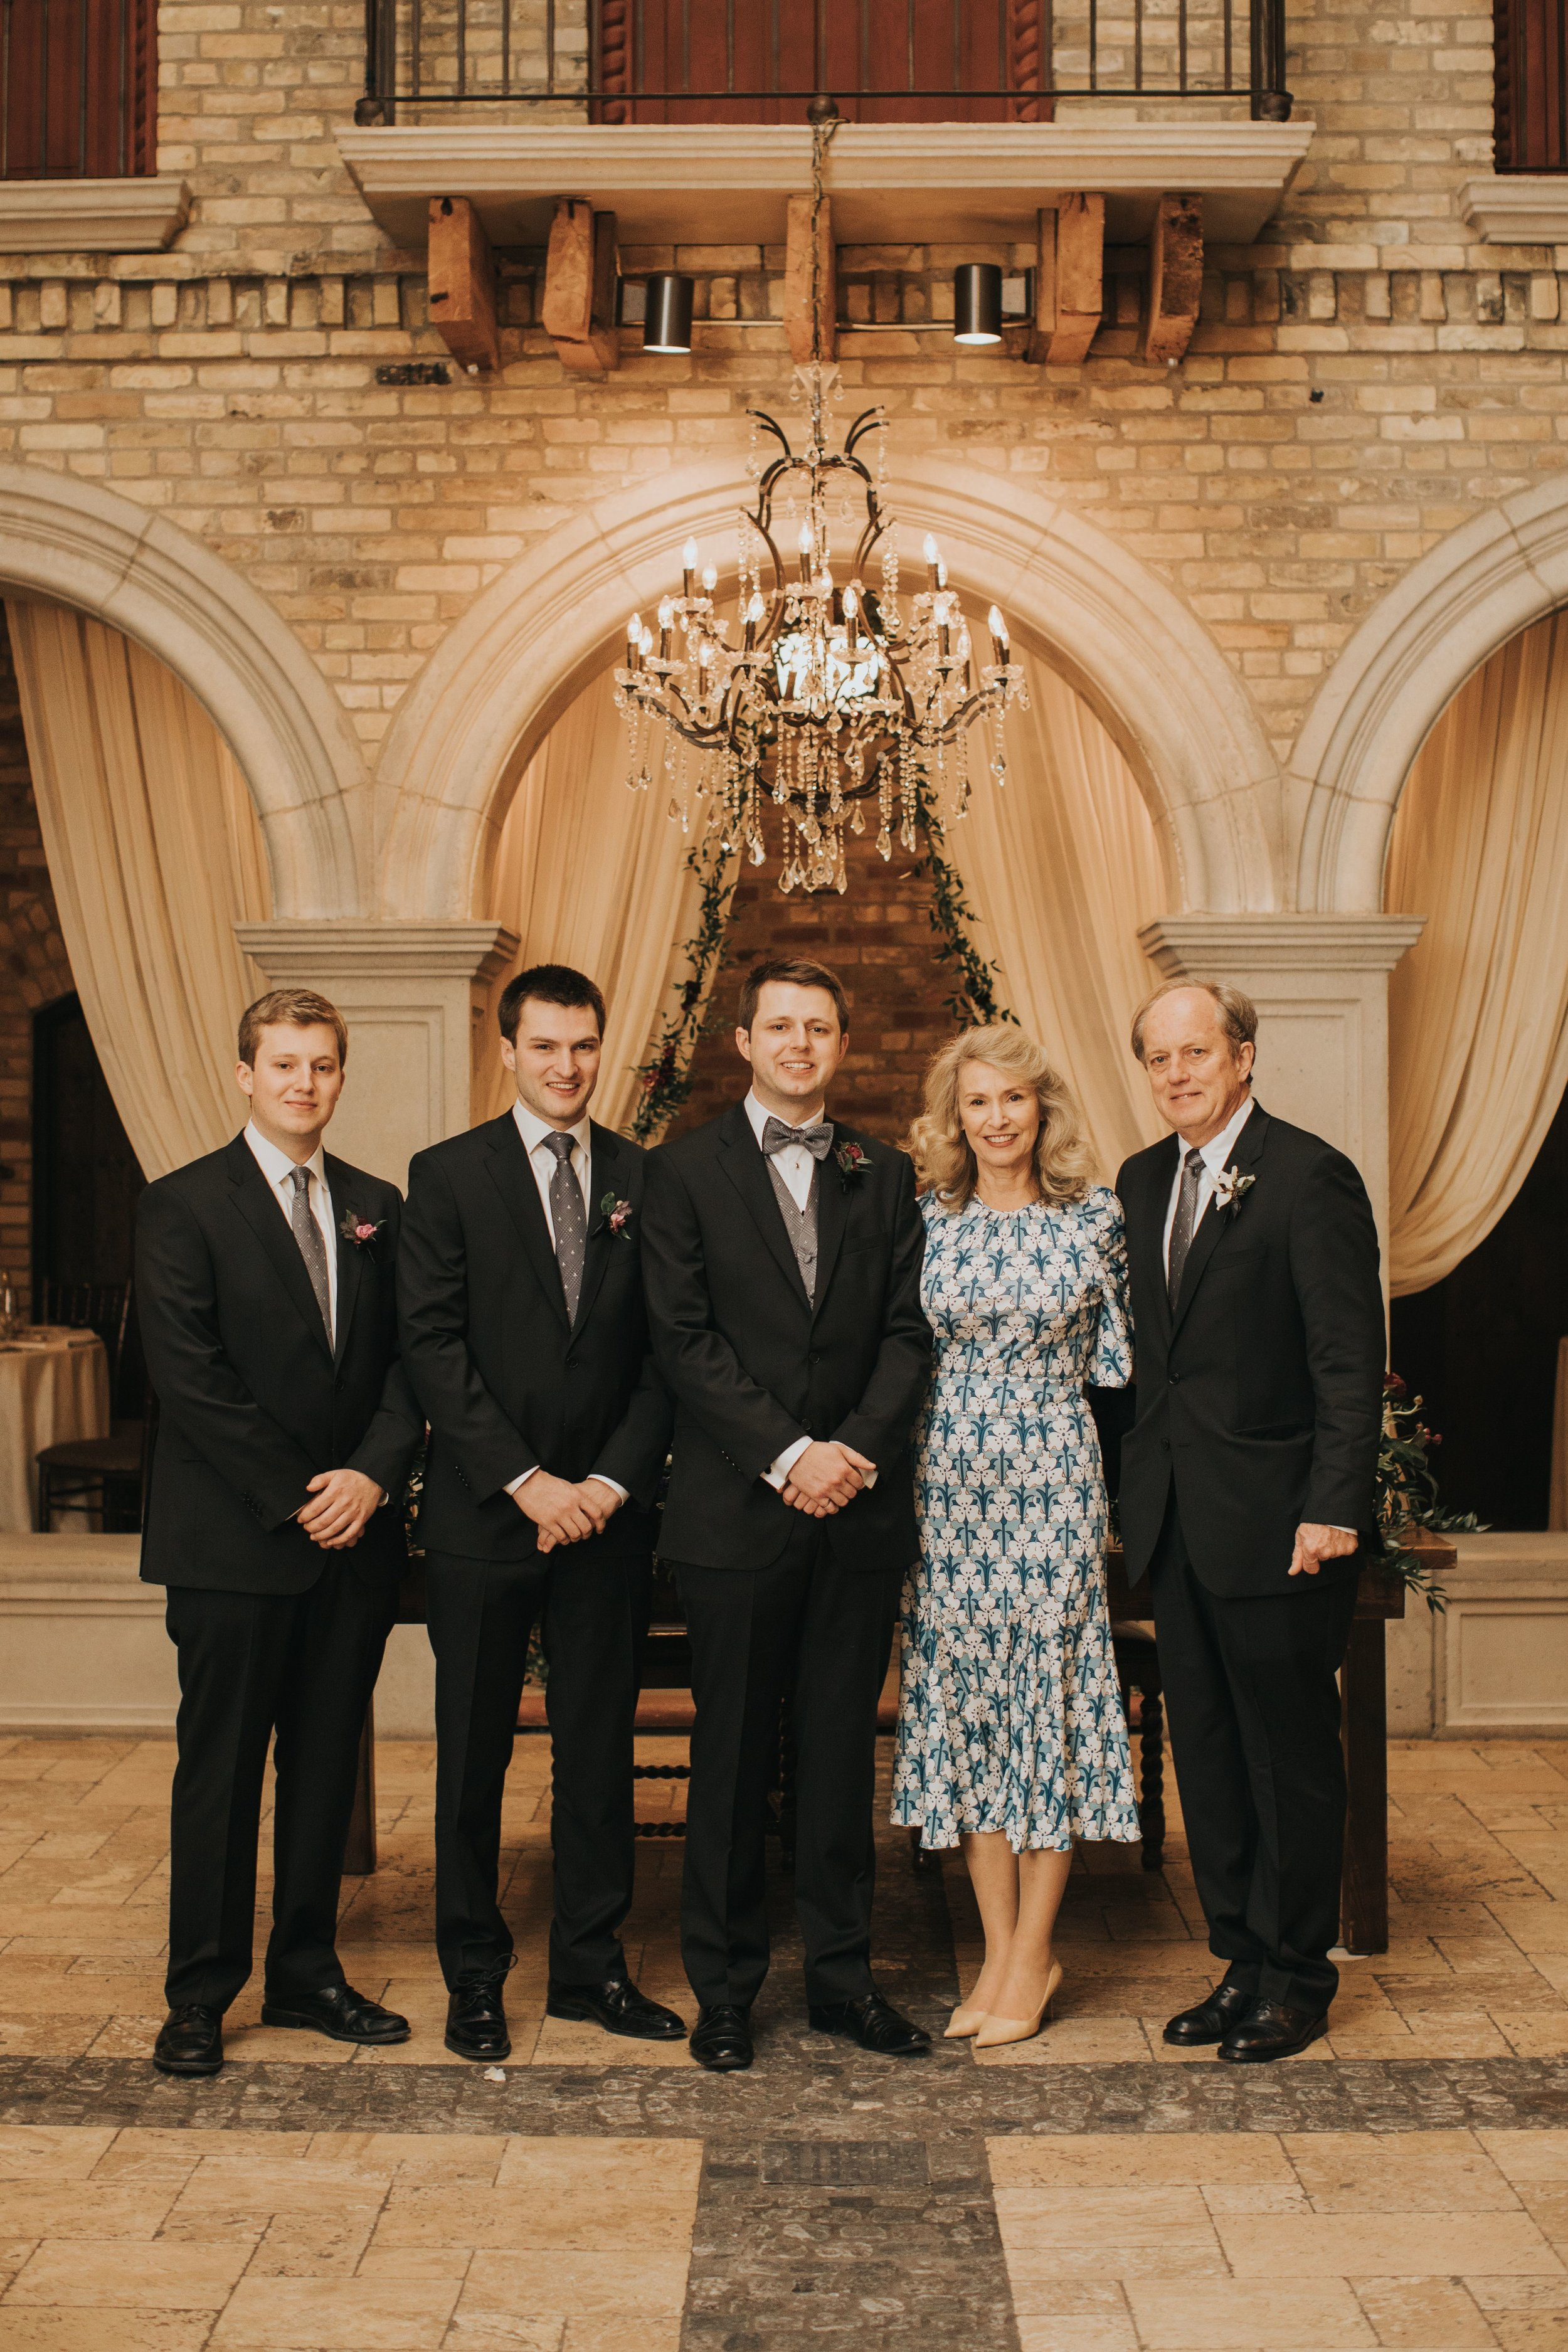 Paul and Mary Ann Adams and their sons